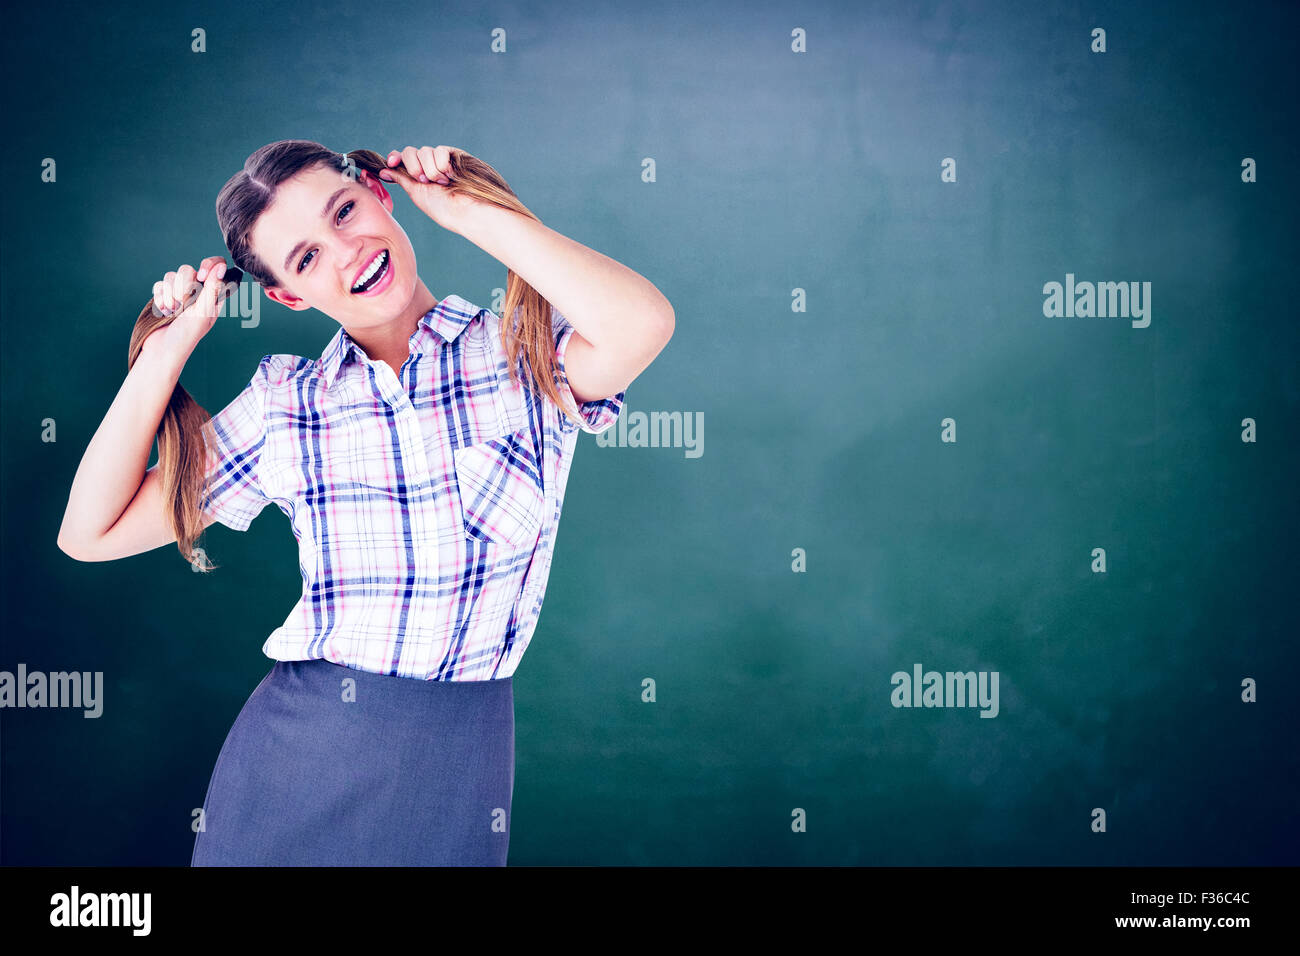 Composite image of geeky hipster holding her pigtails - Stock Image